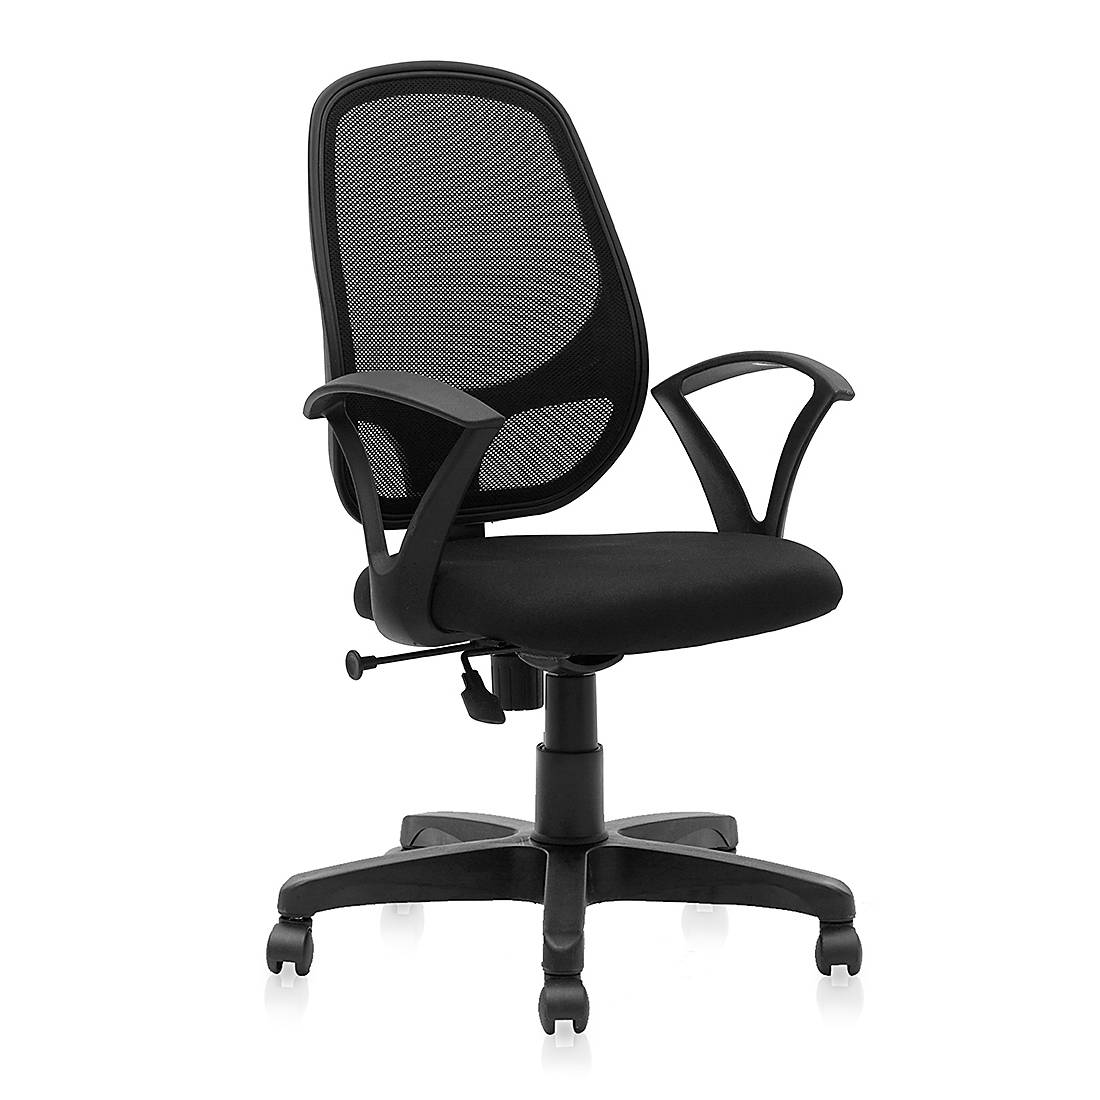 Ergonomic Study Chair: Buy Ergonomically Designed Study Chairs